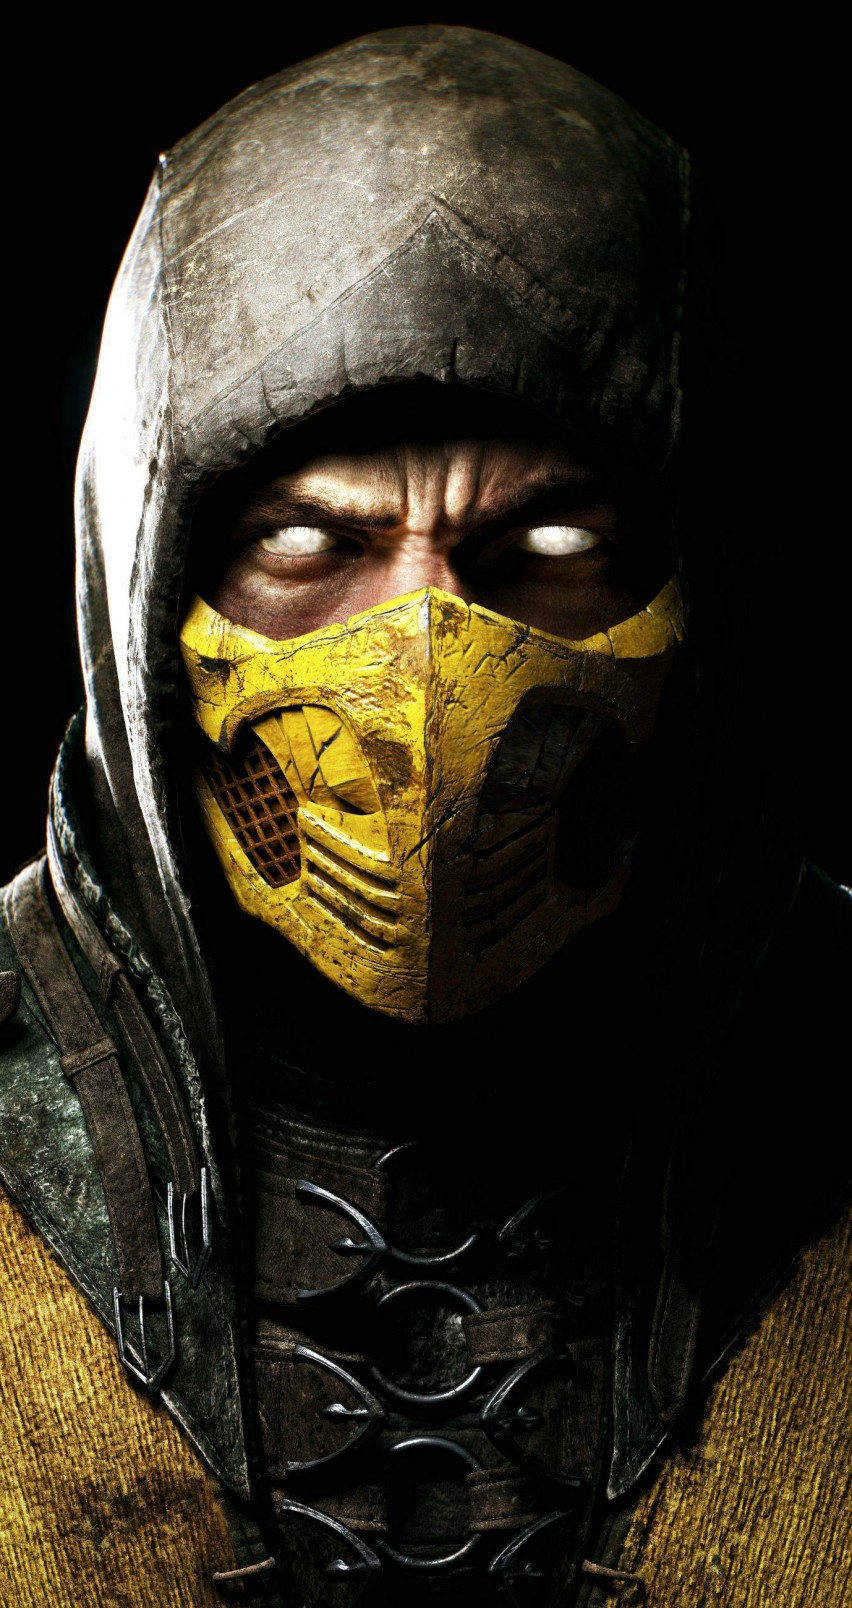 Scorpion Mortal Kombat X HD wallpaper for iPhone 6   HDwallpapersnet 852x1608